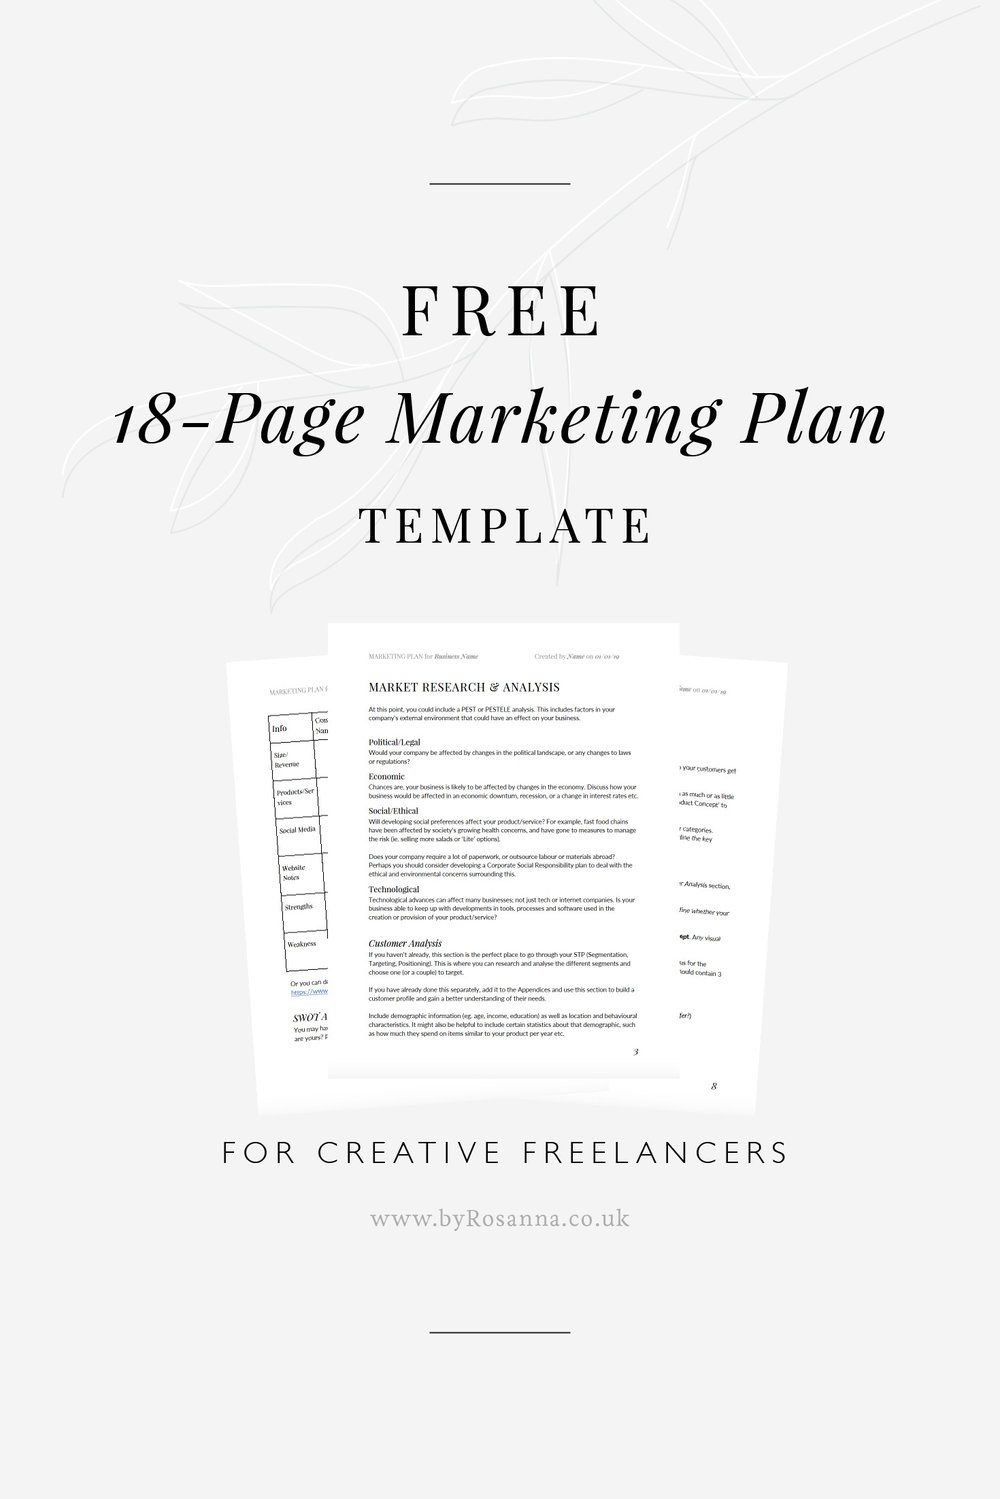 006 Fearsome Marketing Plan Format For Small Busines Image  Business Template FreeFull